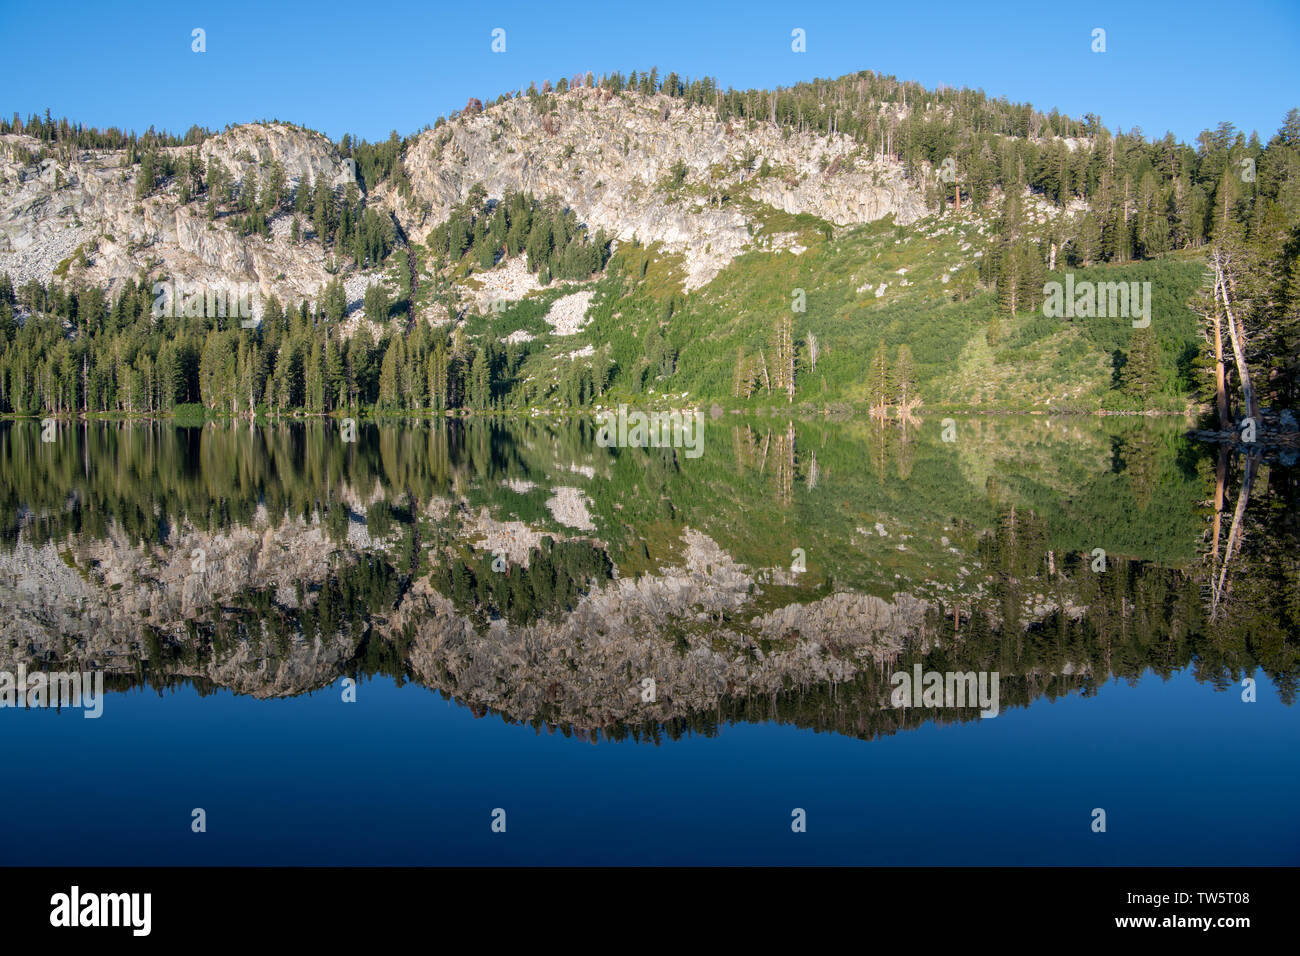 Tranquil, perfectly still alpine lake reflecting pine trees, mountains, and blue sky - Lake George in California's Sierra Nevada Mountains Stock Photo